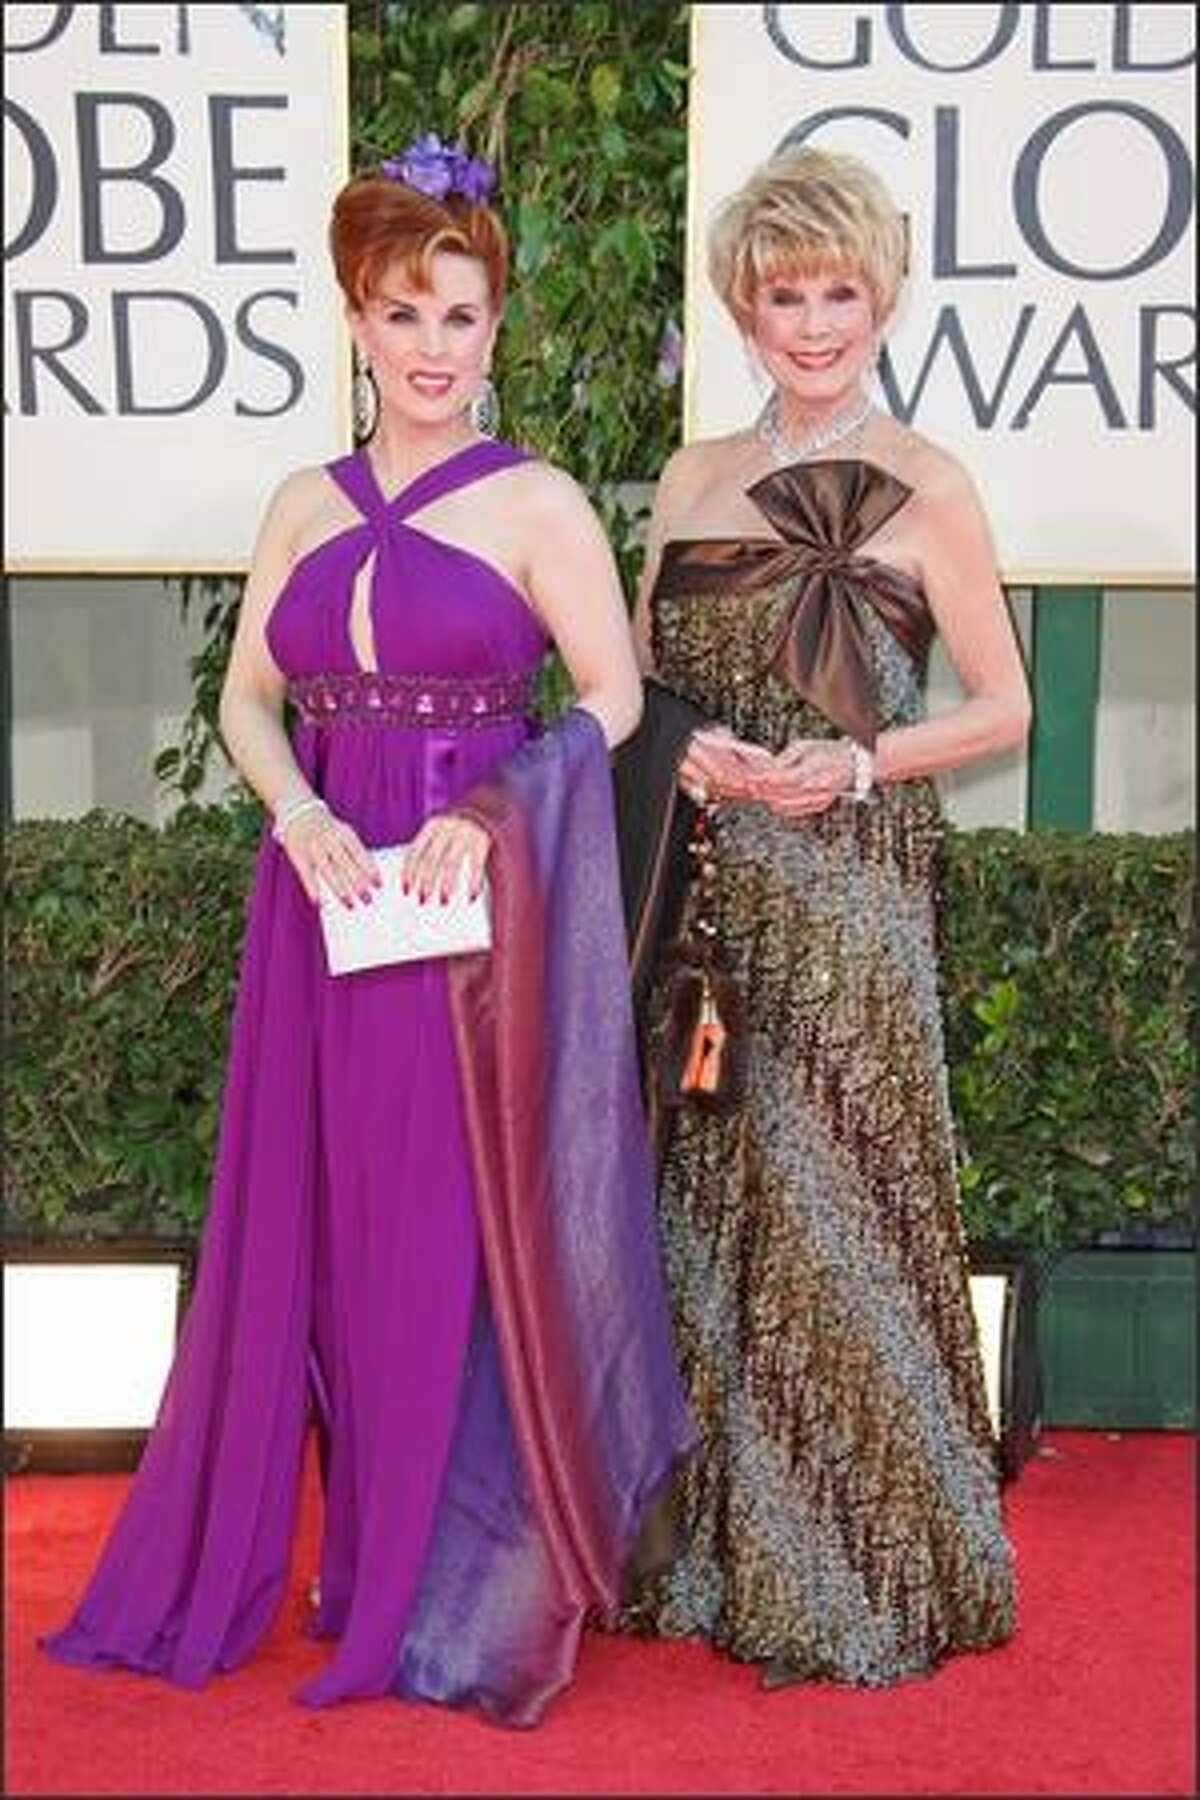 (L-R) Actress Kat Kramer and mother Karen Sharpe Kramer arrives at the 66th Annual Golden Globe Awards held at the Beverly Hilton Hotel in Beverly Hills, California.